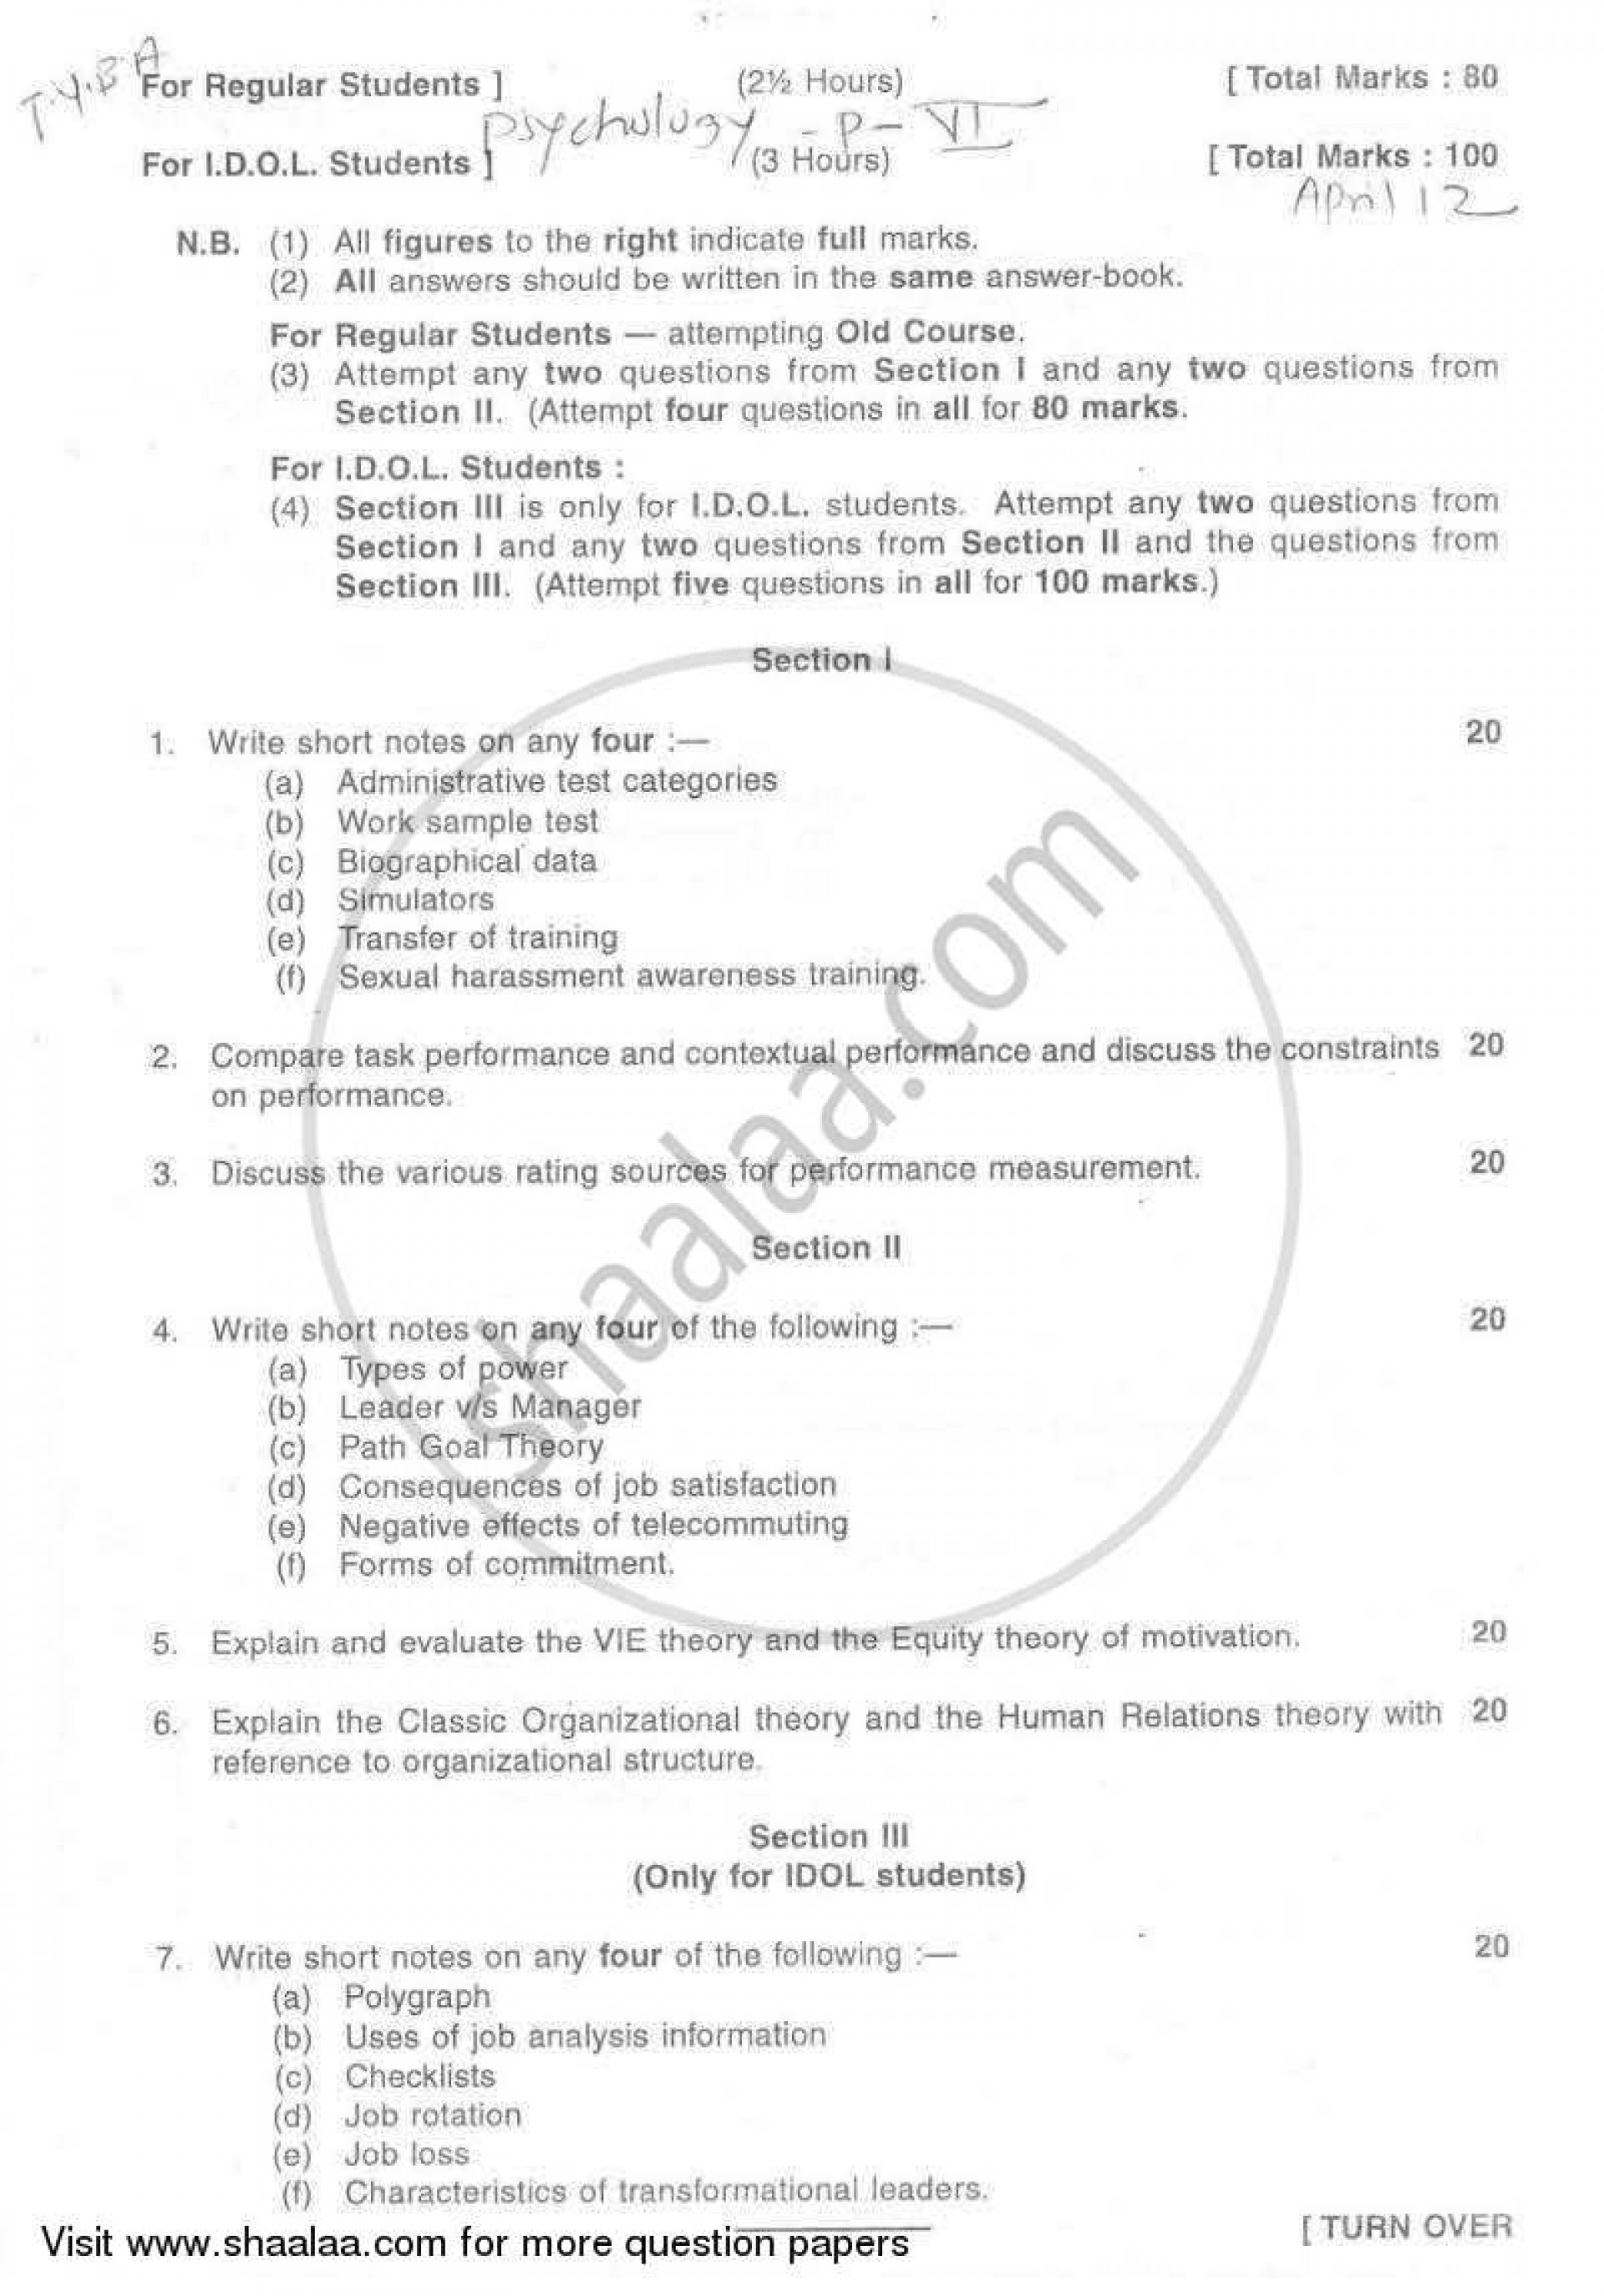 017 Psychologyearch Paper On Dreams University Of Mumbai Bachelor Industrial Organizational T Y Yearly Pattern Semester Tyba 2011 29a03925dfc524f2aa4cb10e4d3da996a Singular Psychology Research 1920